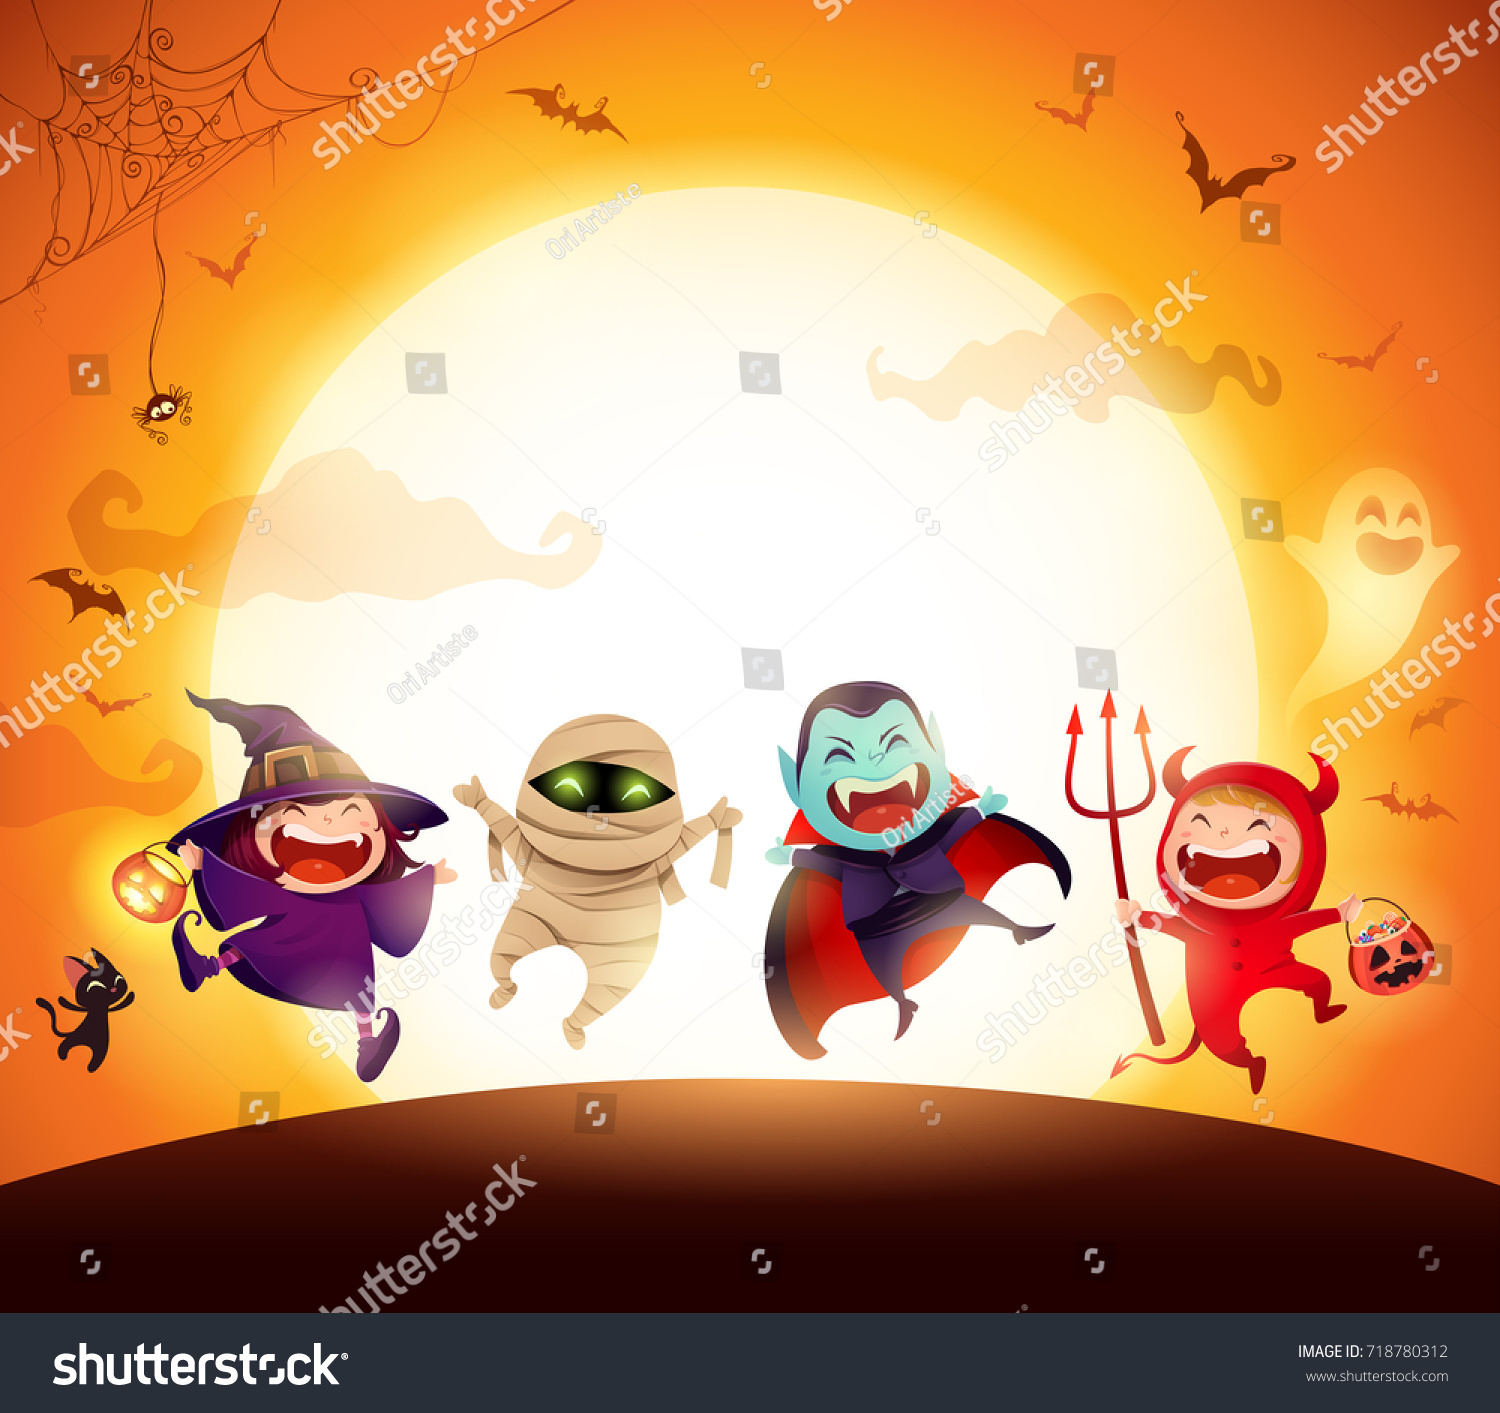 Halloween Kids Costume Party. Group of kids in Halloween costume jumping in the moonlight. Orange background. #718780312